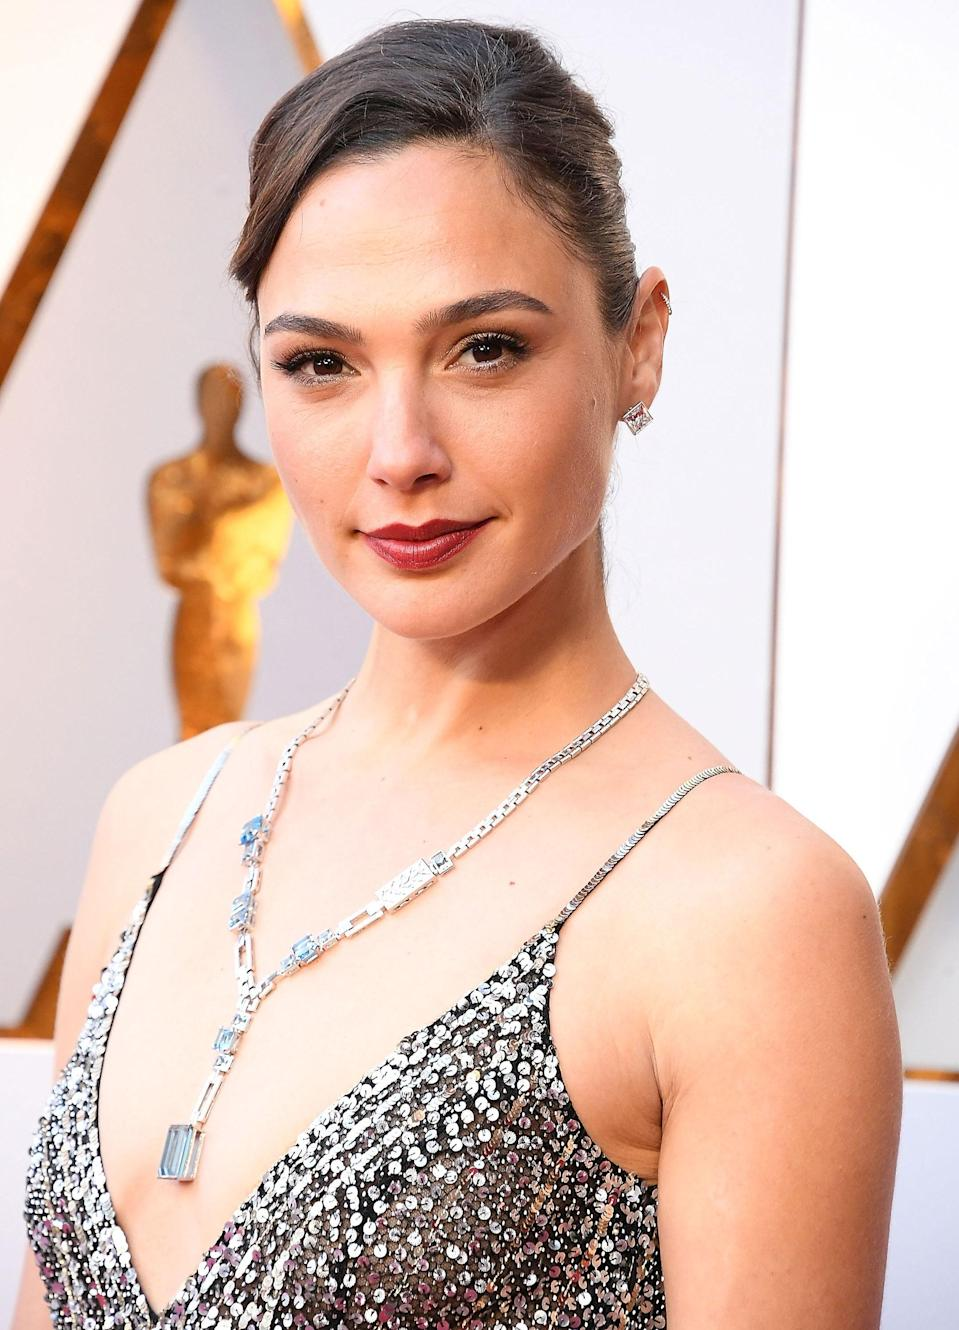 Worthy of Wonder Woman, Gal Gadot's astonishing Tiffany Blue Book collection necklace featured 61 carats worth of aquamarines and more than a thousand diamonds to boot. The Art Deco–inspired piece brought added color and vibrancy to Gadot's silver Givenchy look and proved instantly iconic.